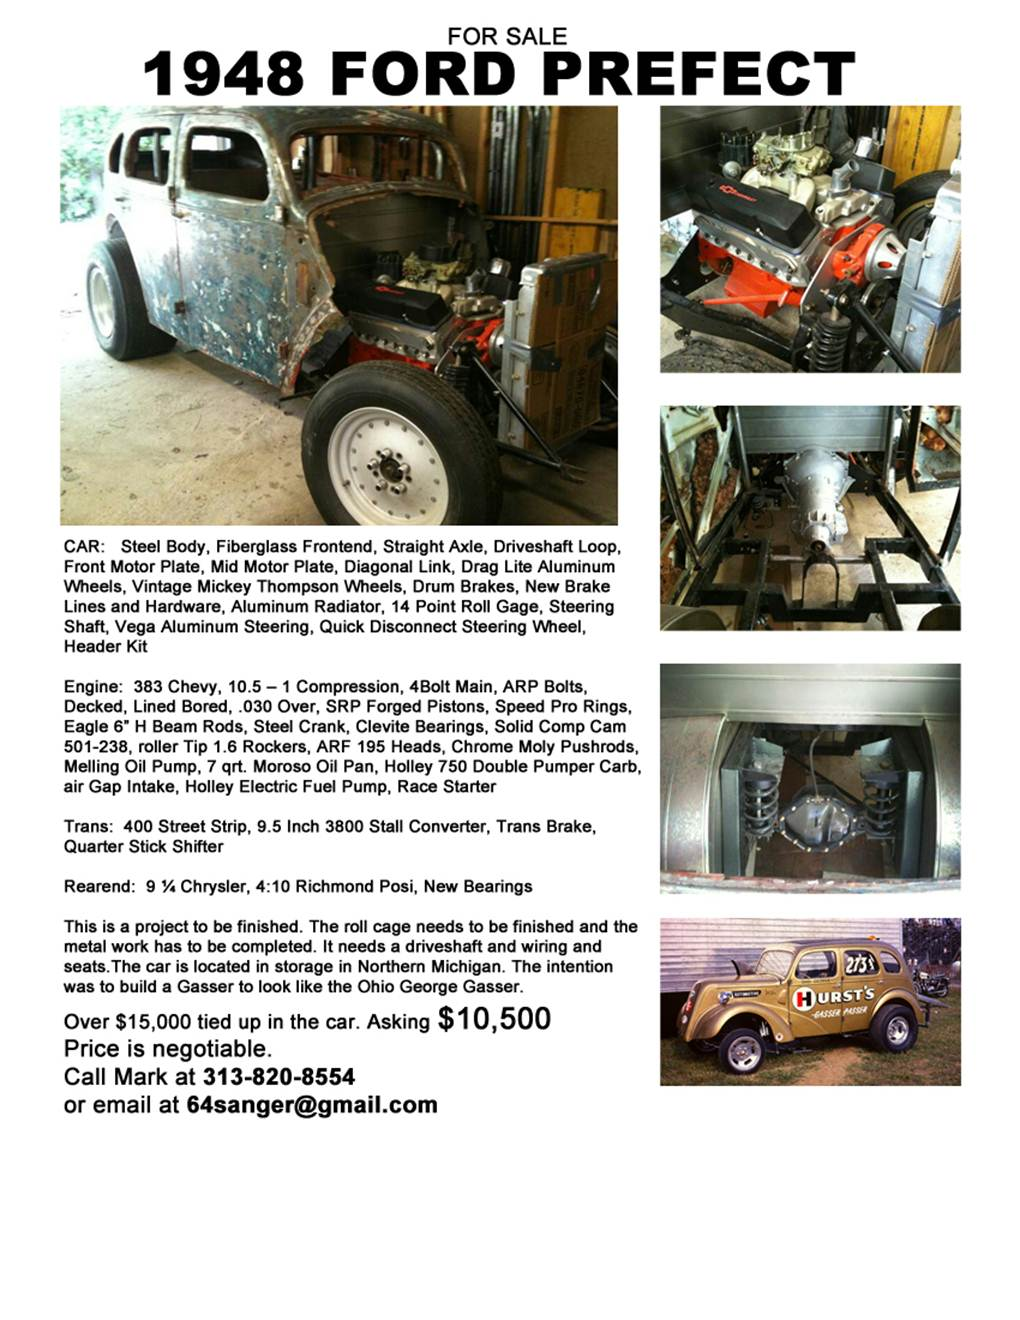 Posting this for a friend / 1948 Prefect Gasser Project for